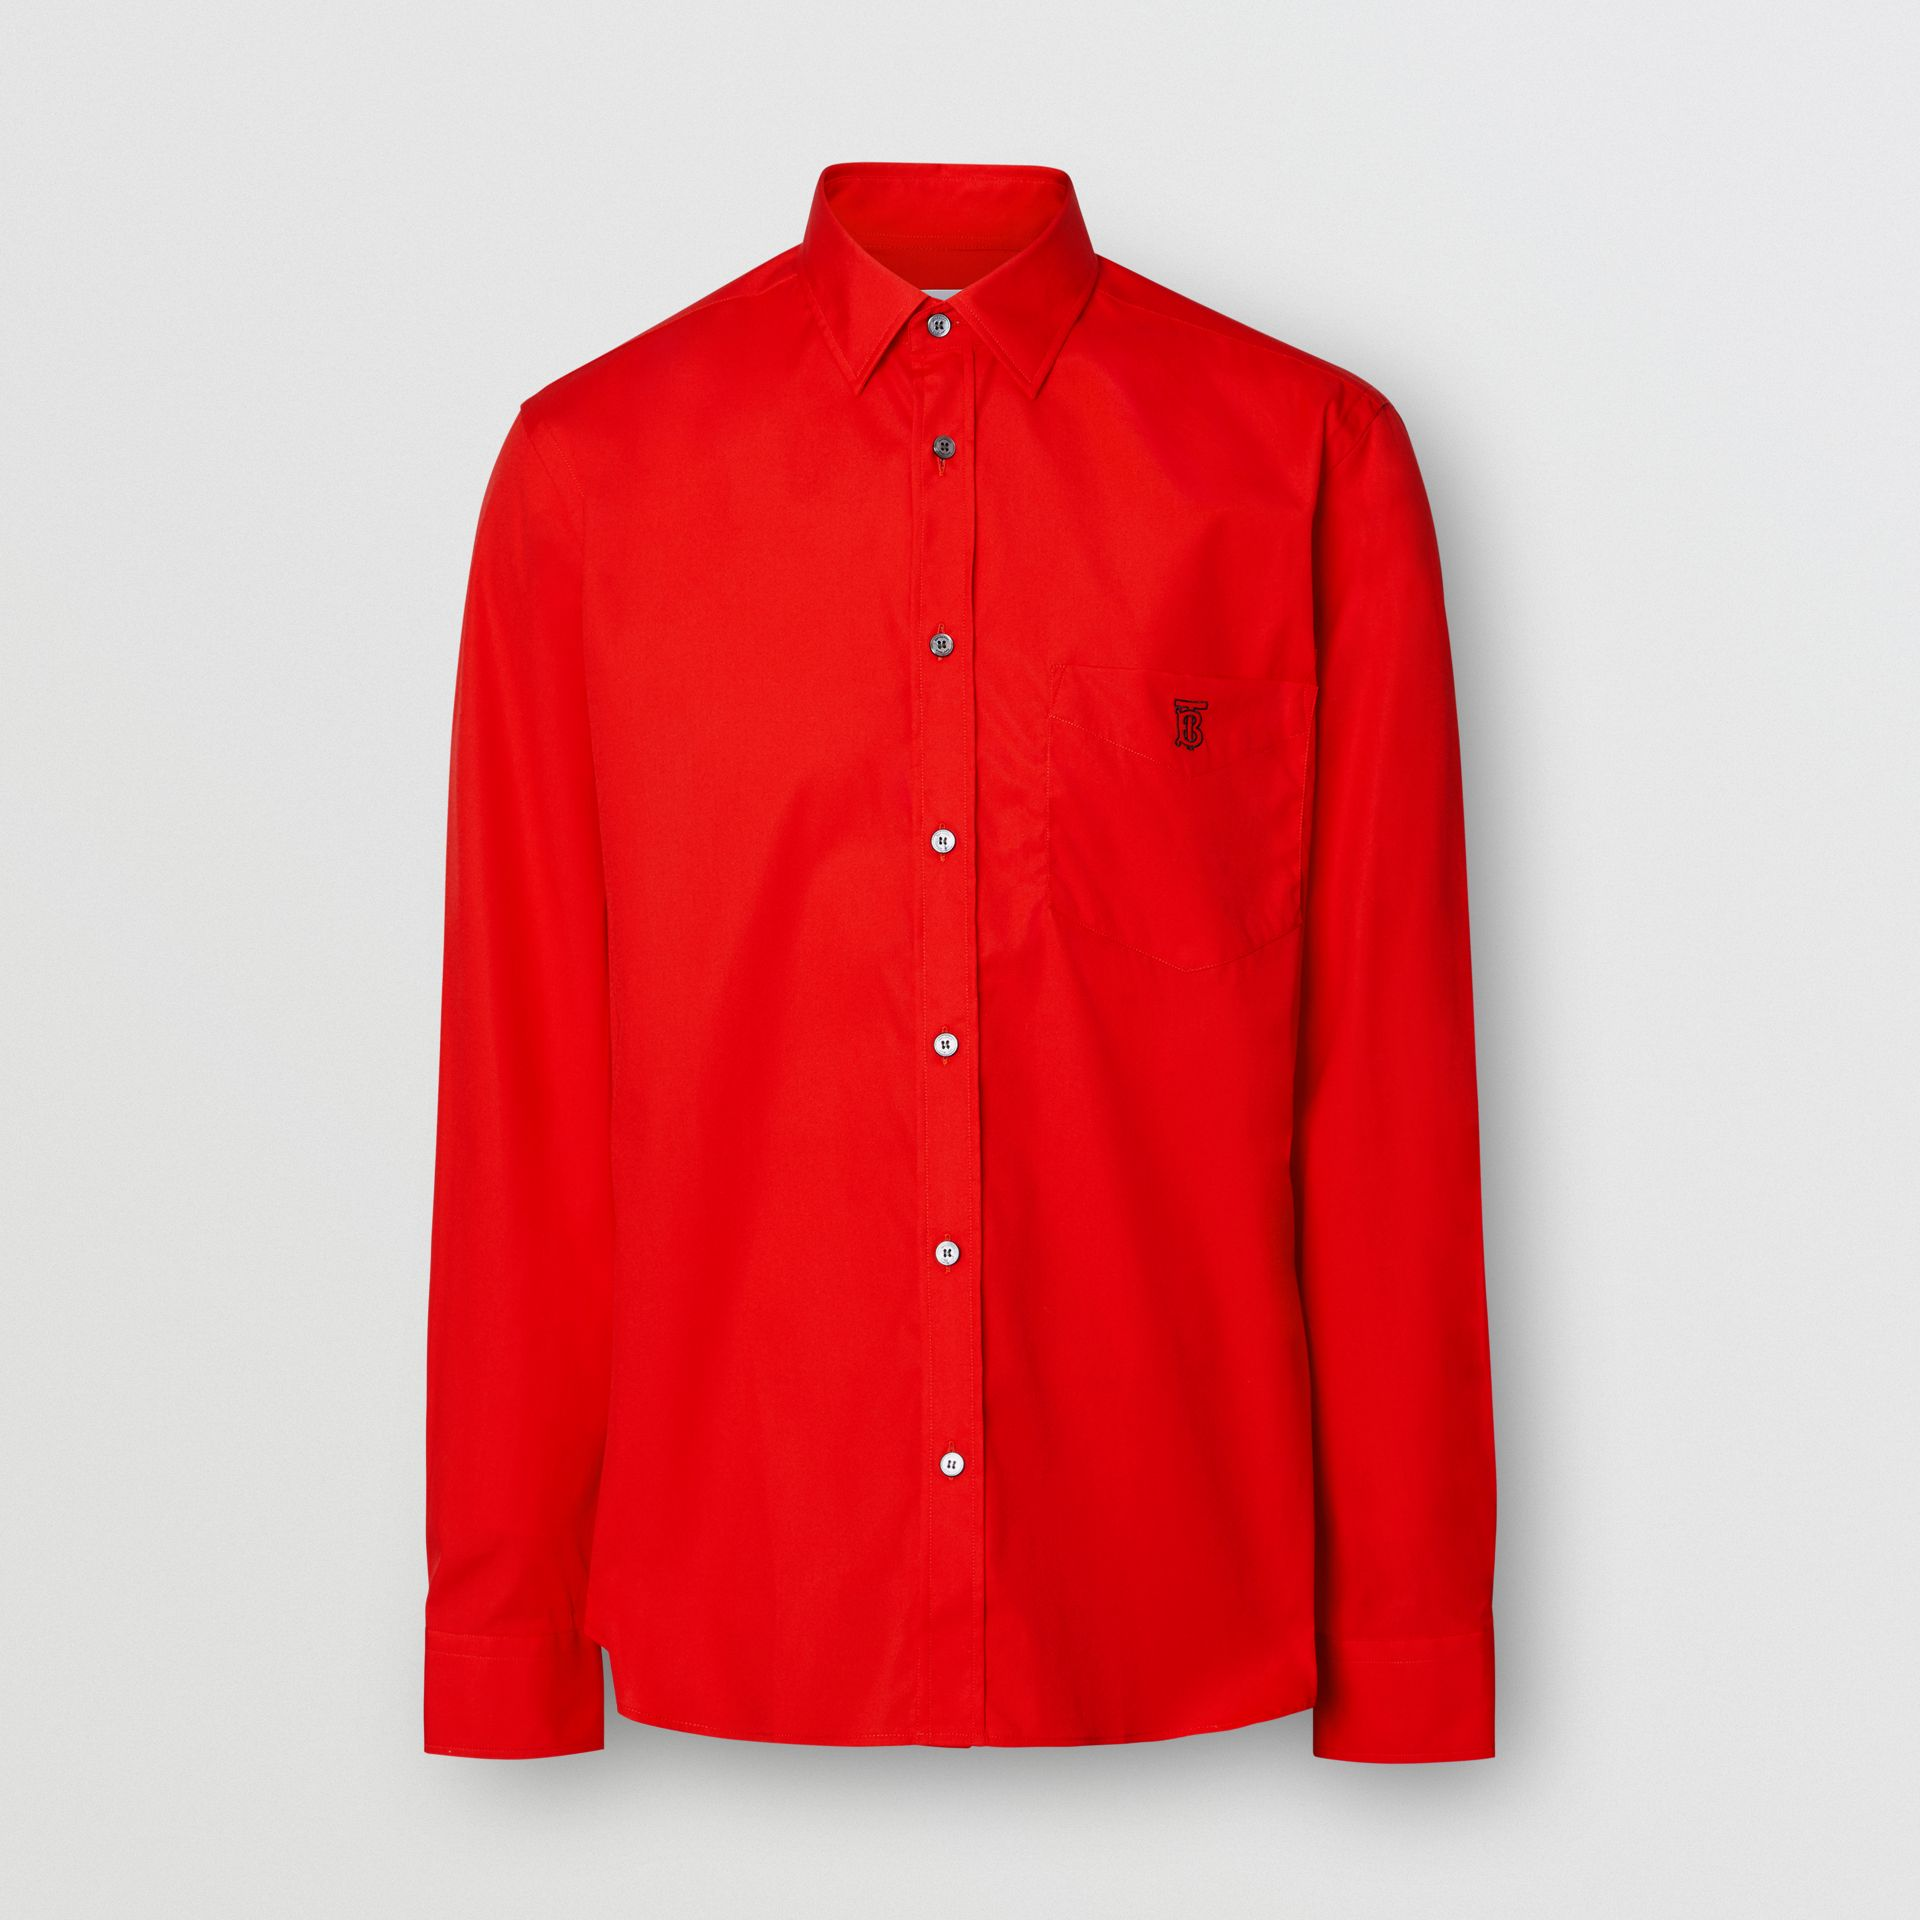 Monogram Motif Stretch Cotton Poplin Shirt in Bright Red - Men | Burberry - gallery image 3